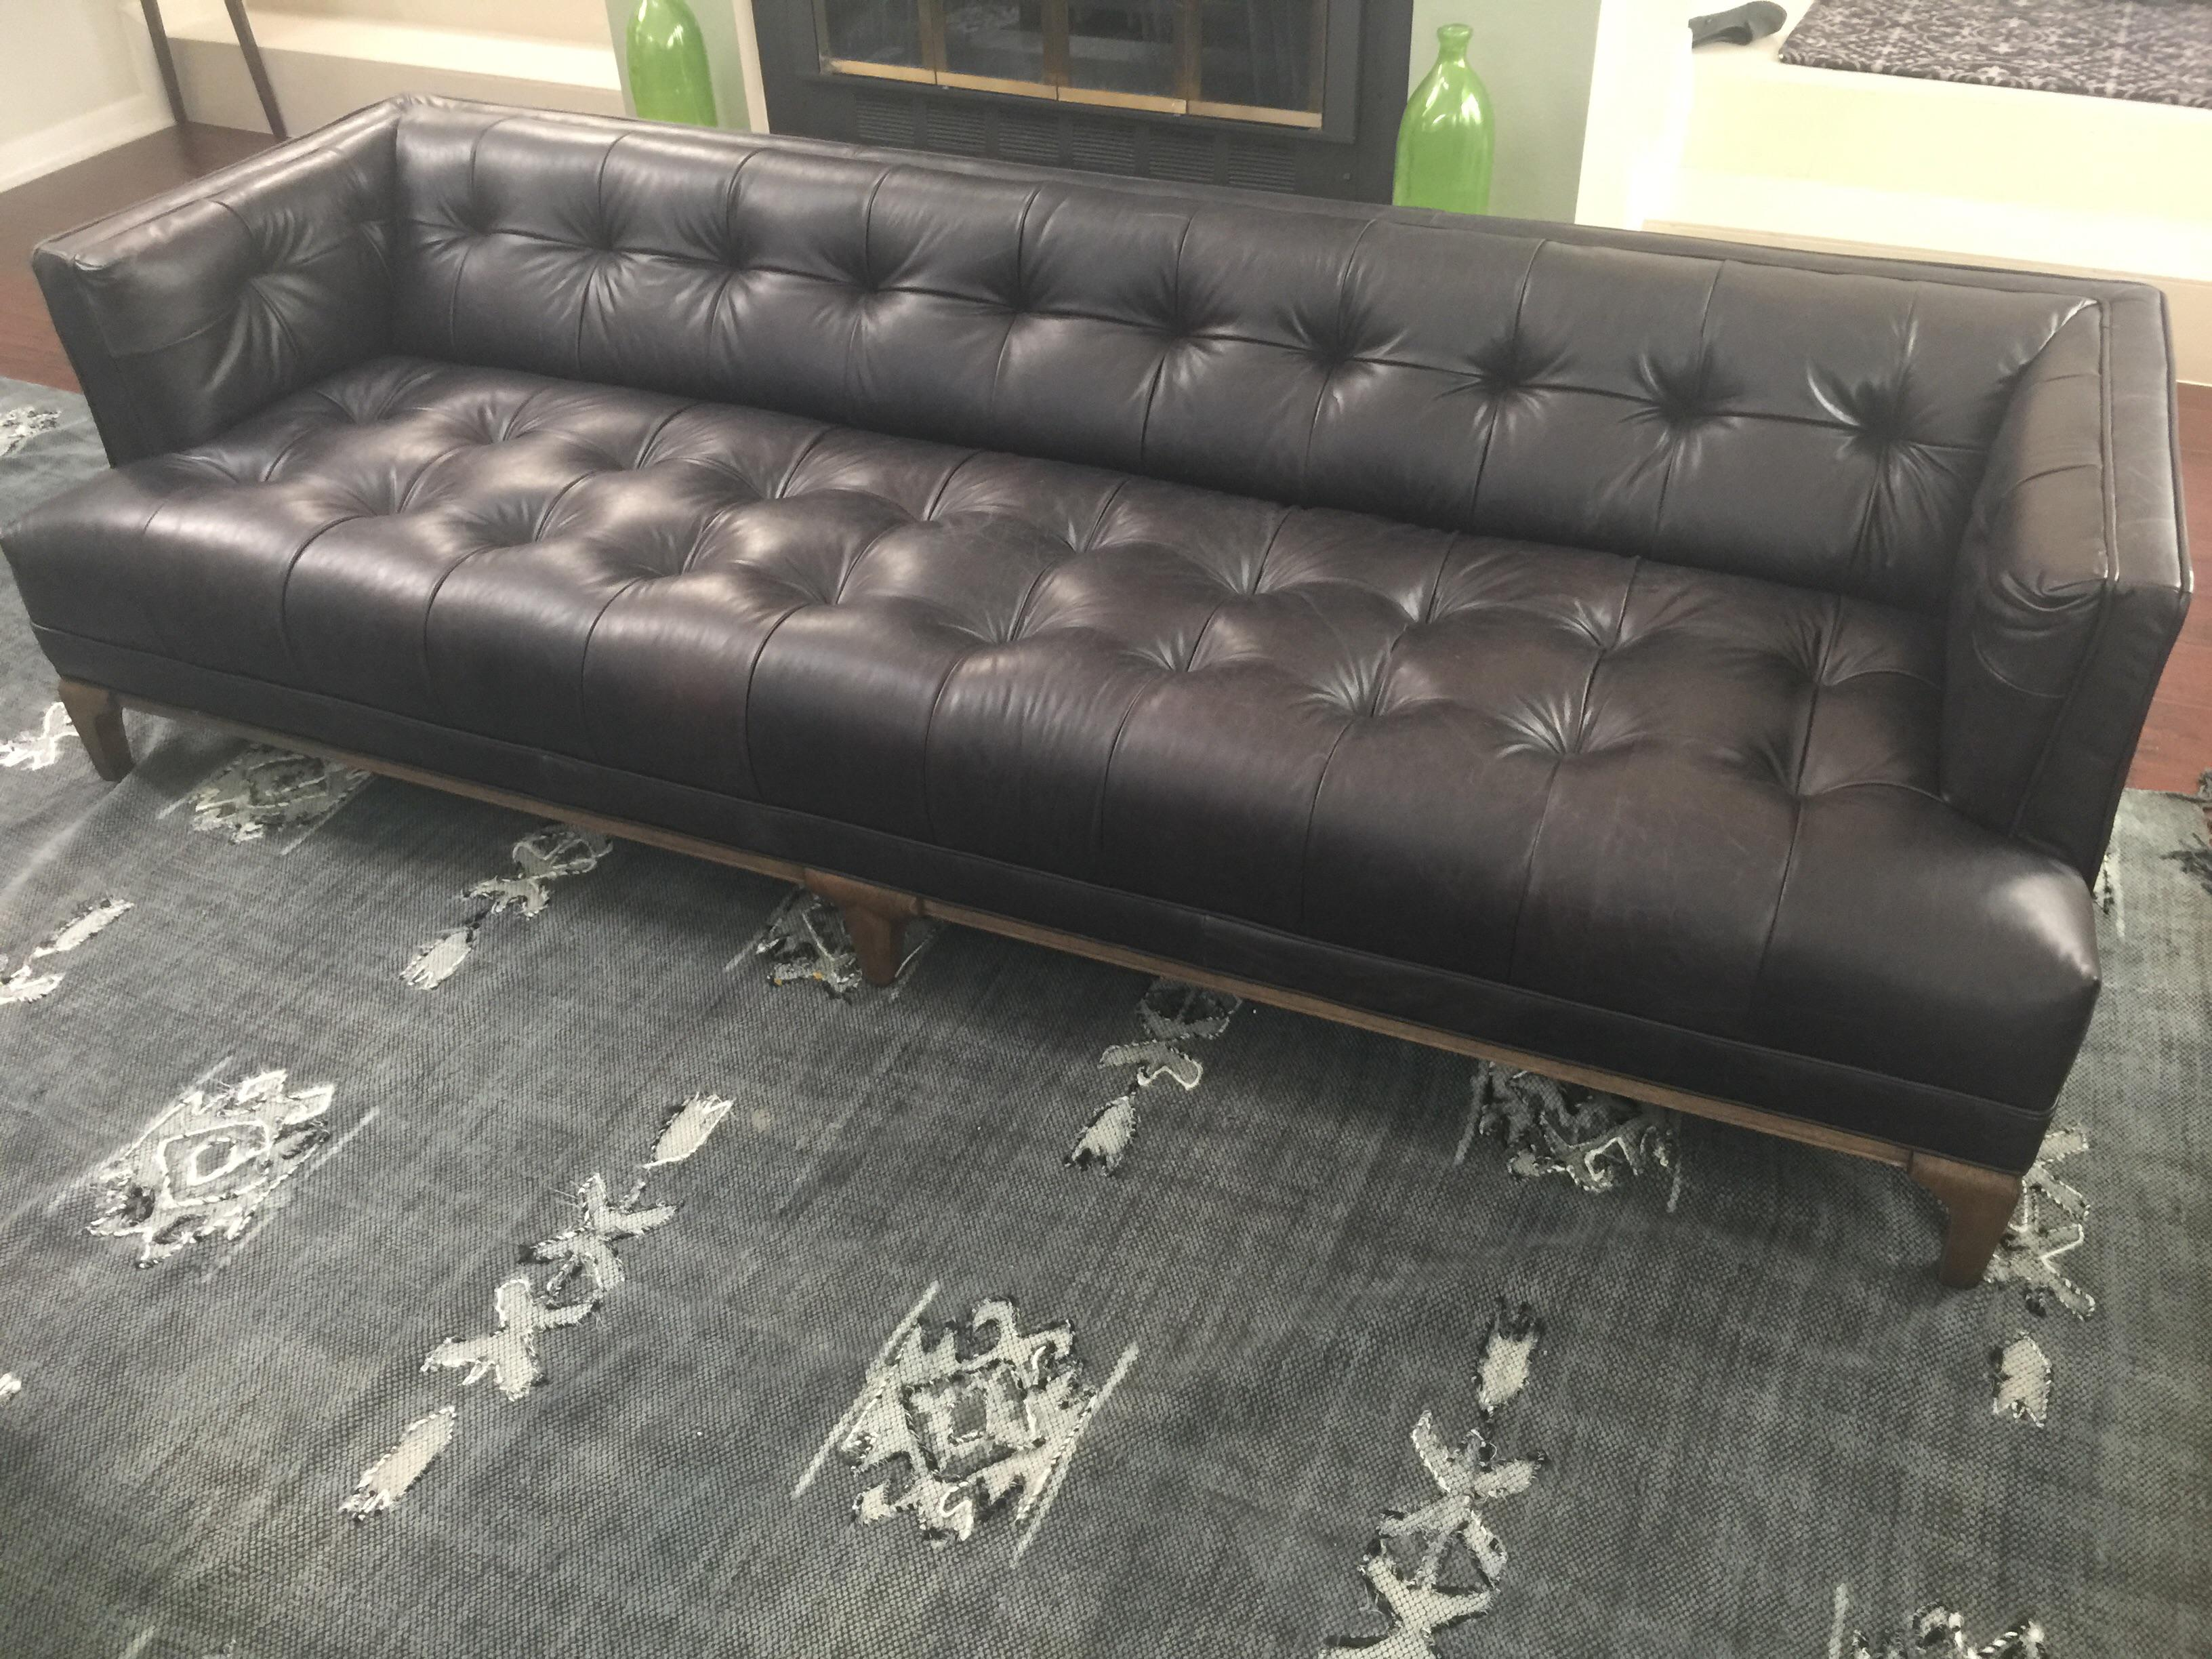 Gentil Four Hands Dylan Leather Sofa For Sale. Direct From The Show Room. A Low,  Tight Mid Century Silhouette In A